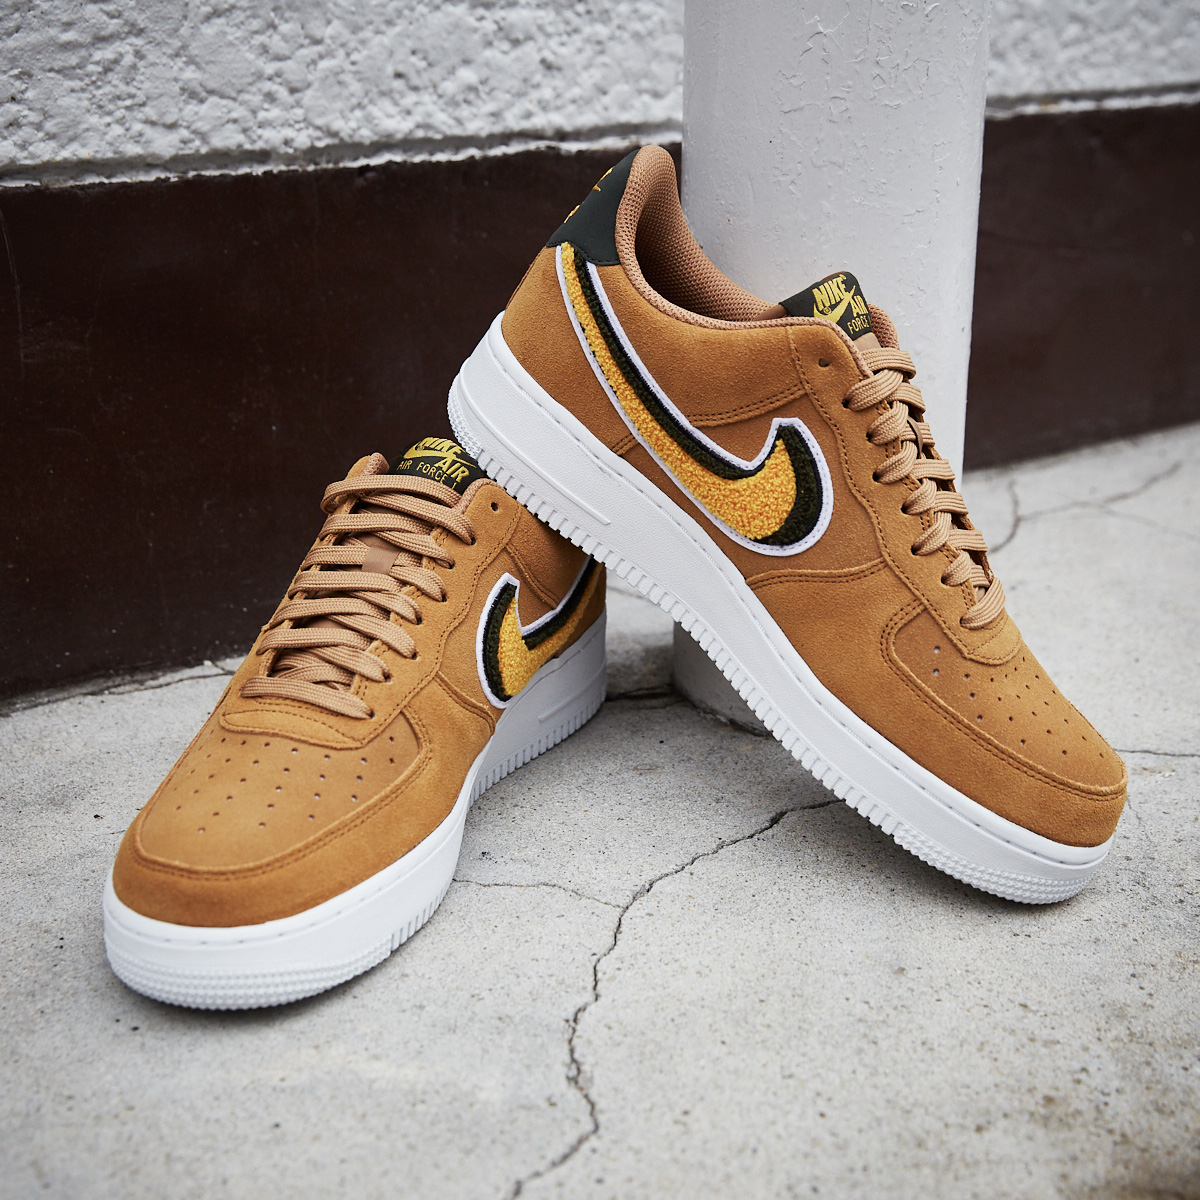 NIKE AIR FORCE 1 '07 LV8(ナイキ エアフォース 1 07 LV8)MUTED BRONZE/YELLOW OCHRE-SEQUOIA-WHITE【メンズ レディース スニーカー】18FA-S